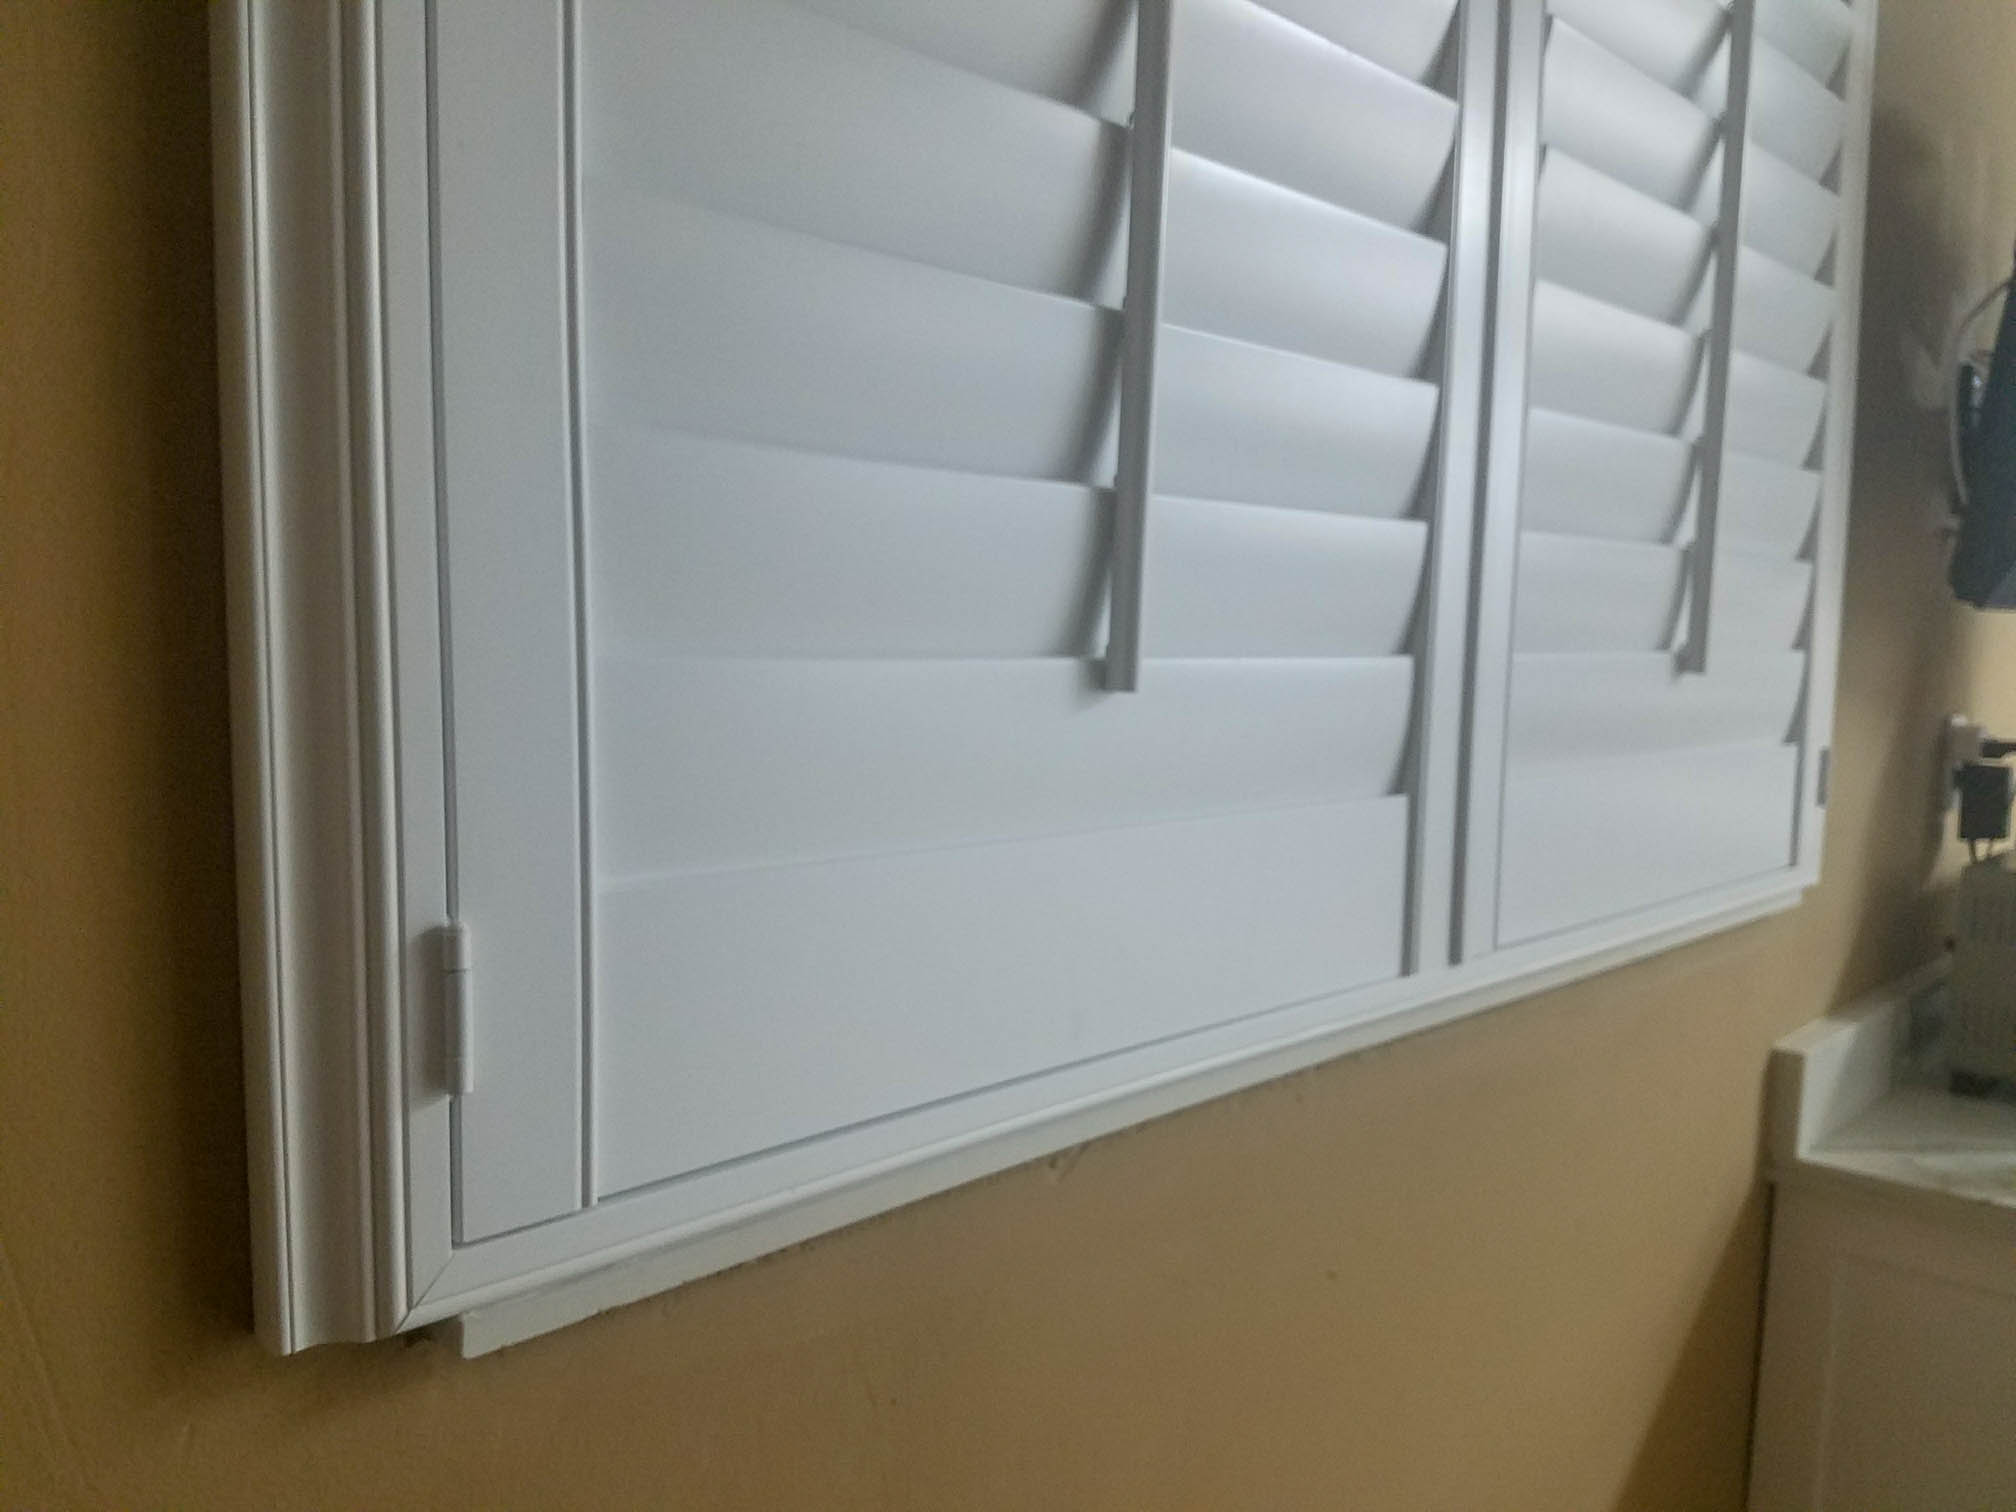 plantation shutters gallery PLANTATION SHUTTERS GALLERY 20171221 175245